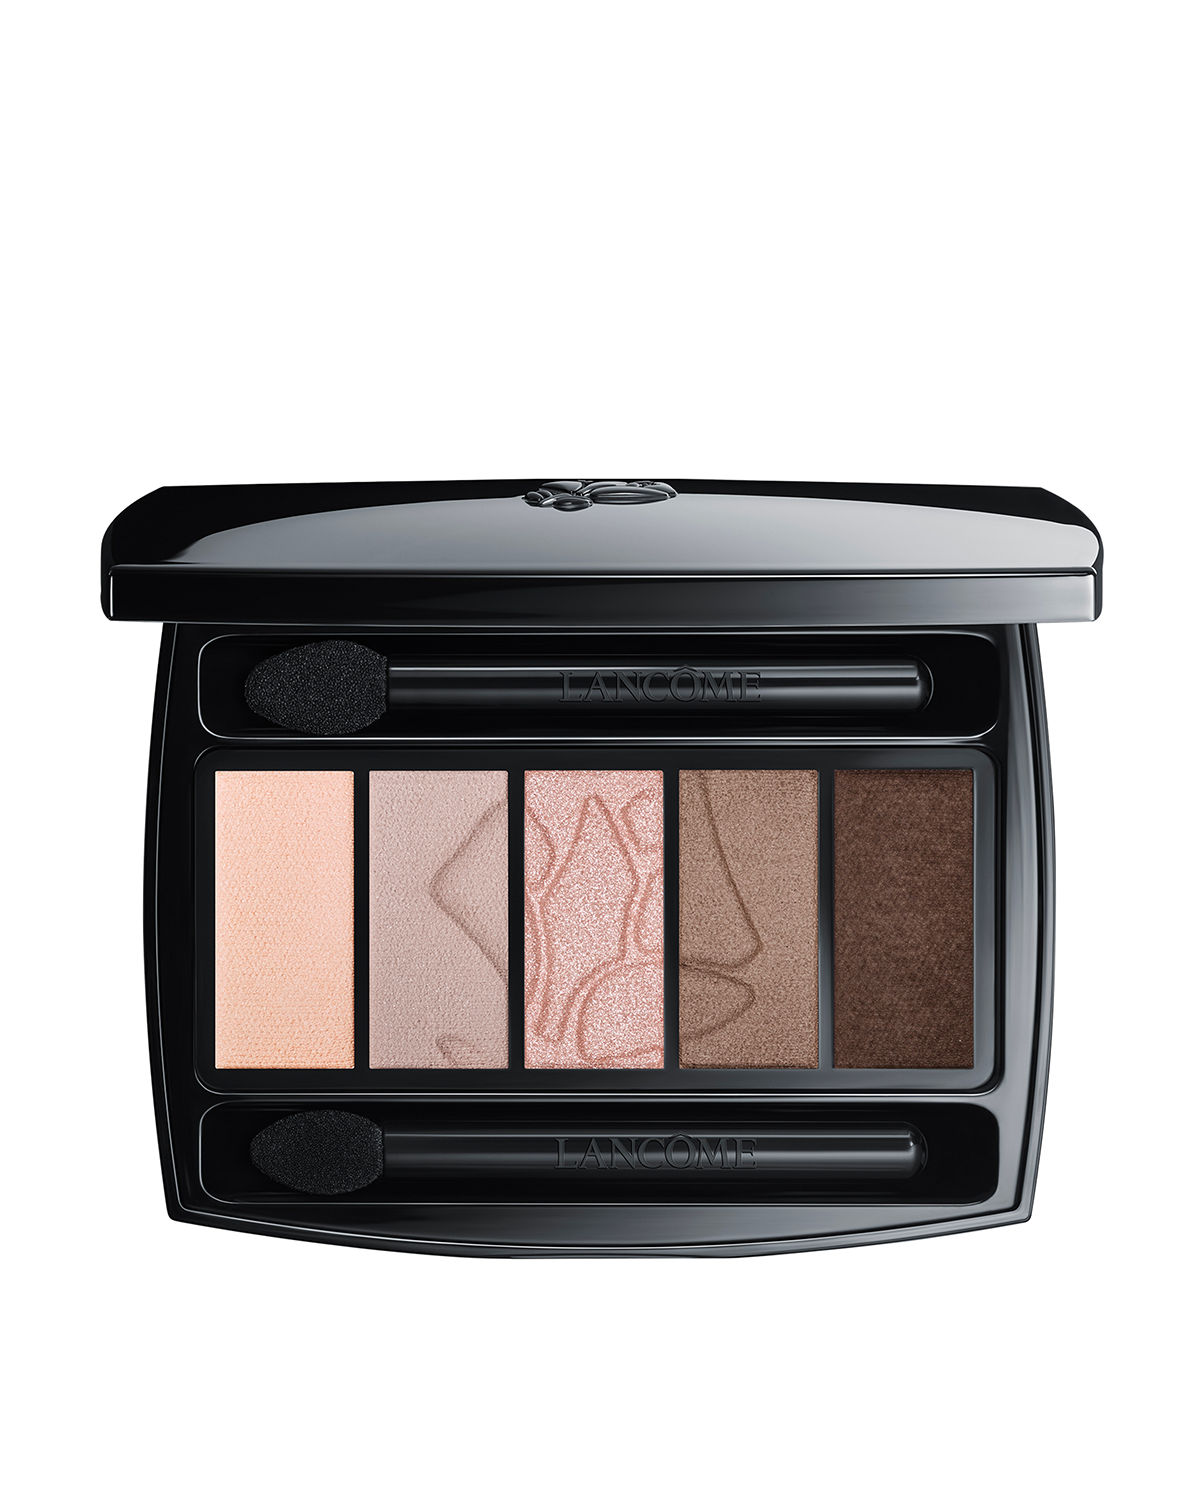 Hypnose 5 Color Eyeshadow Palette by Lancome